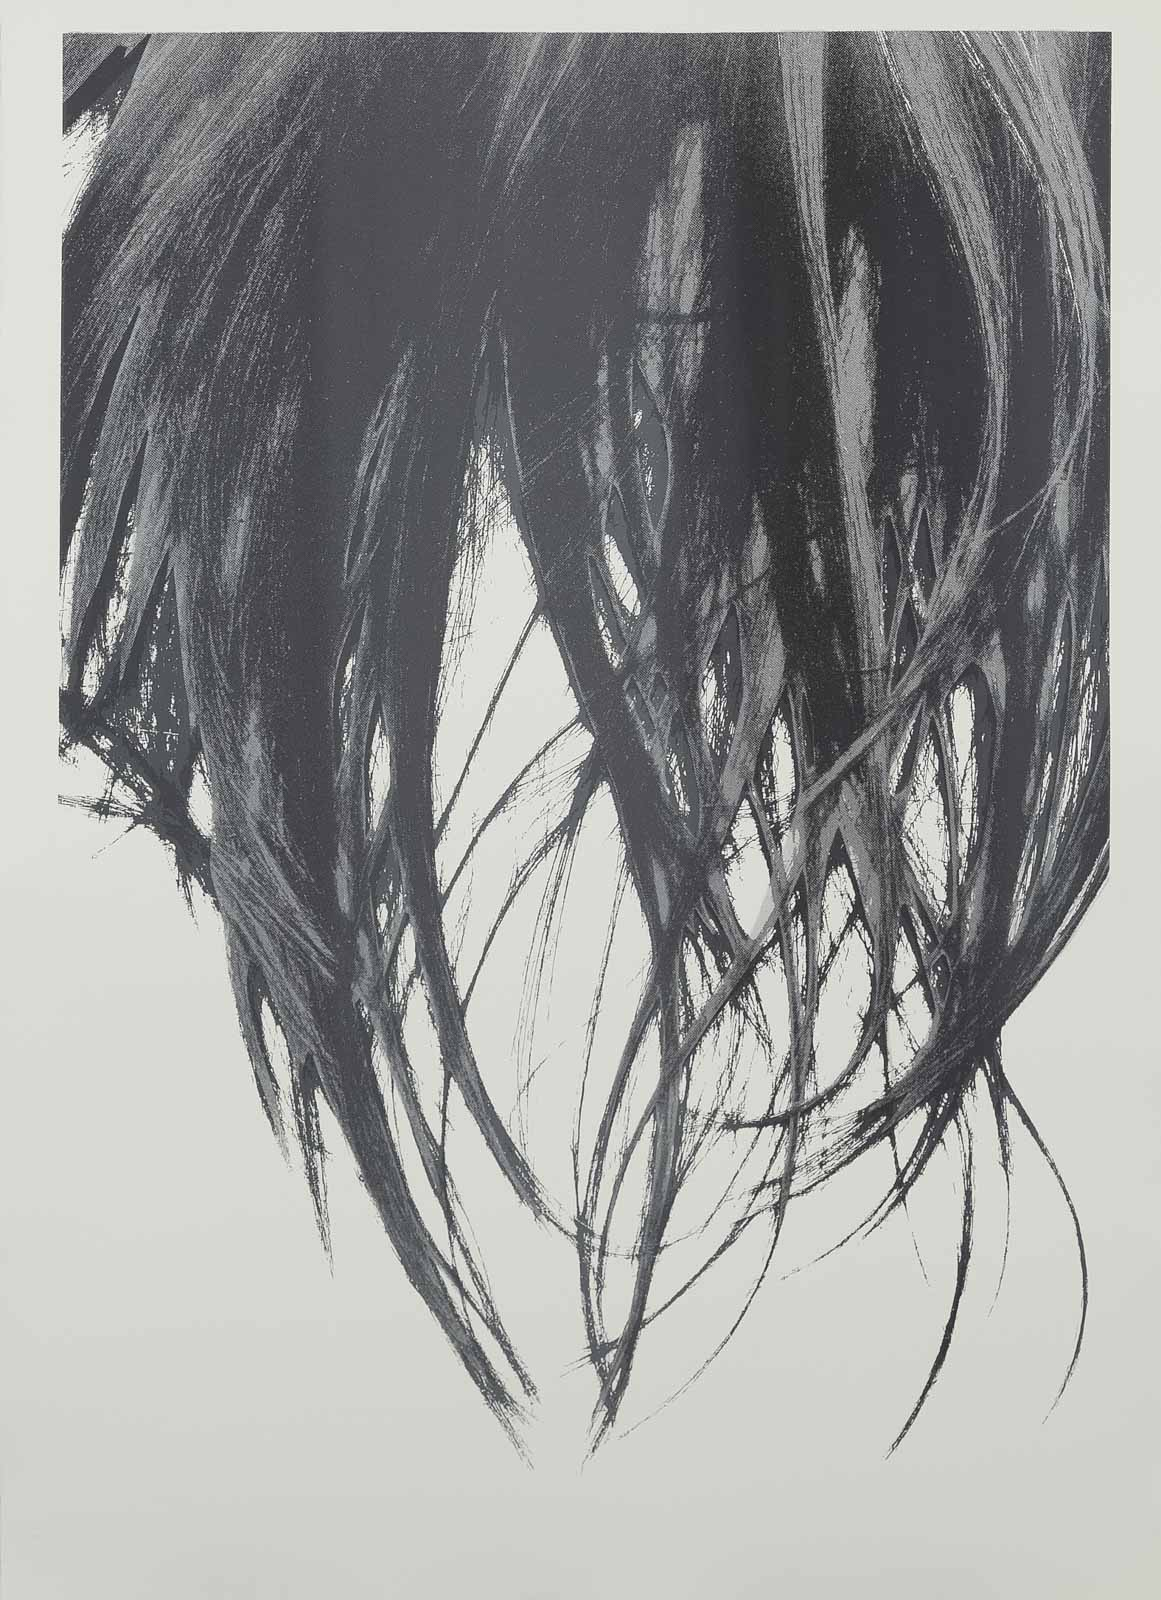 gray scale, 2017, silkscreen print, 107 x 76,5 cm, No. 1 from an edition of 17 unique prints